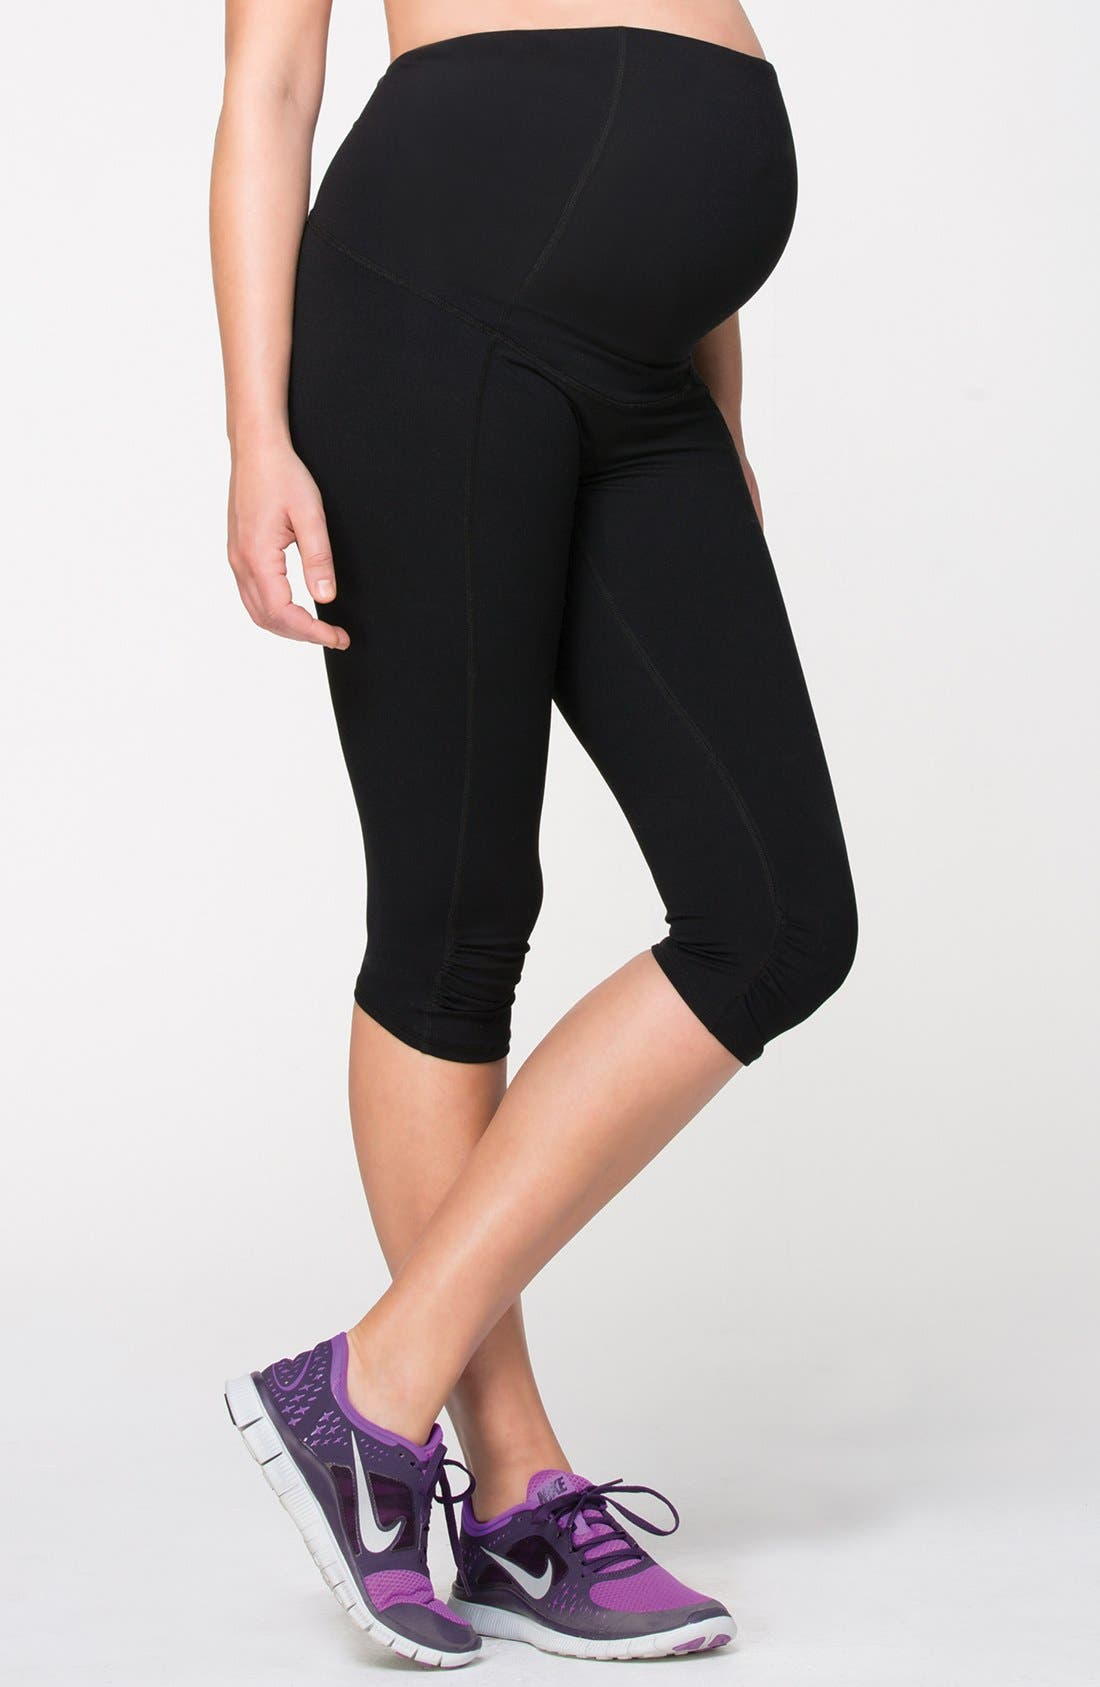 Knee Length Active Maternity Pants with Crossover Panel,                             Main thumbnail 1, color,                             Jet Black